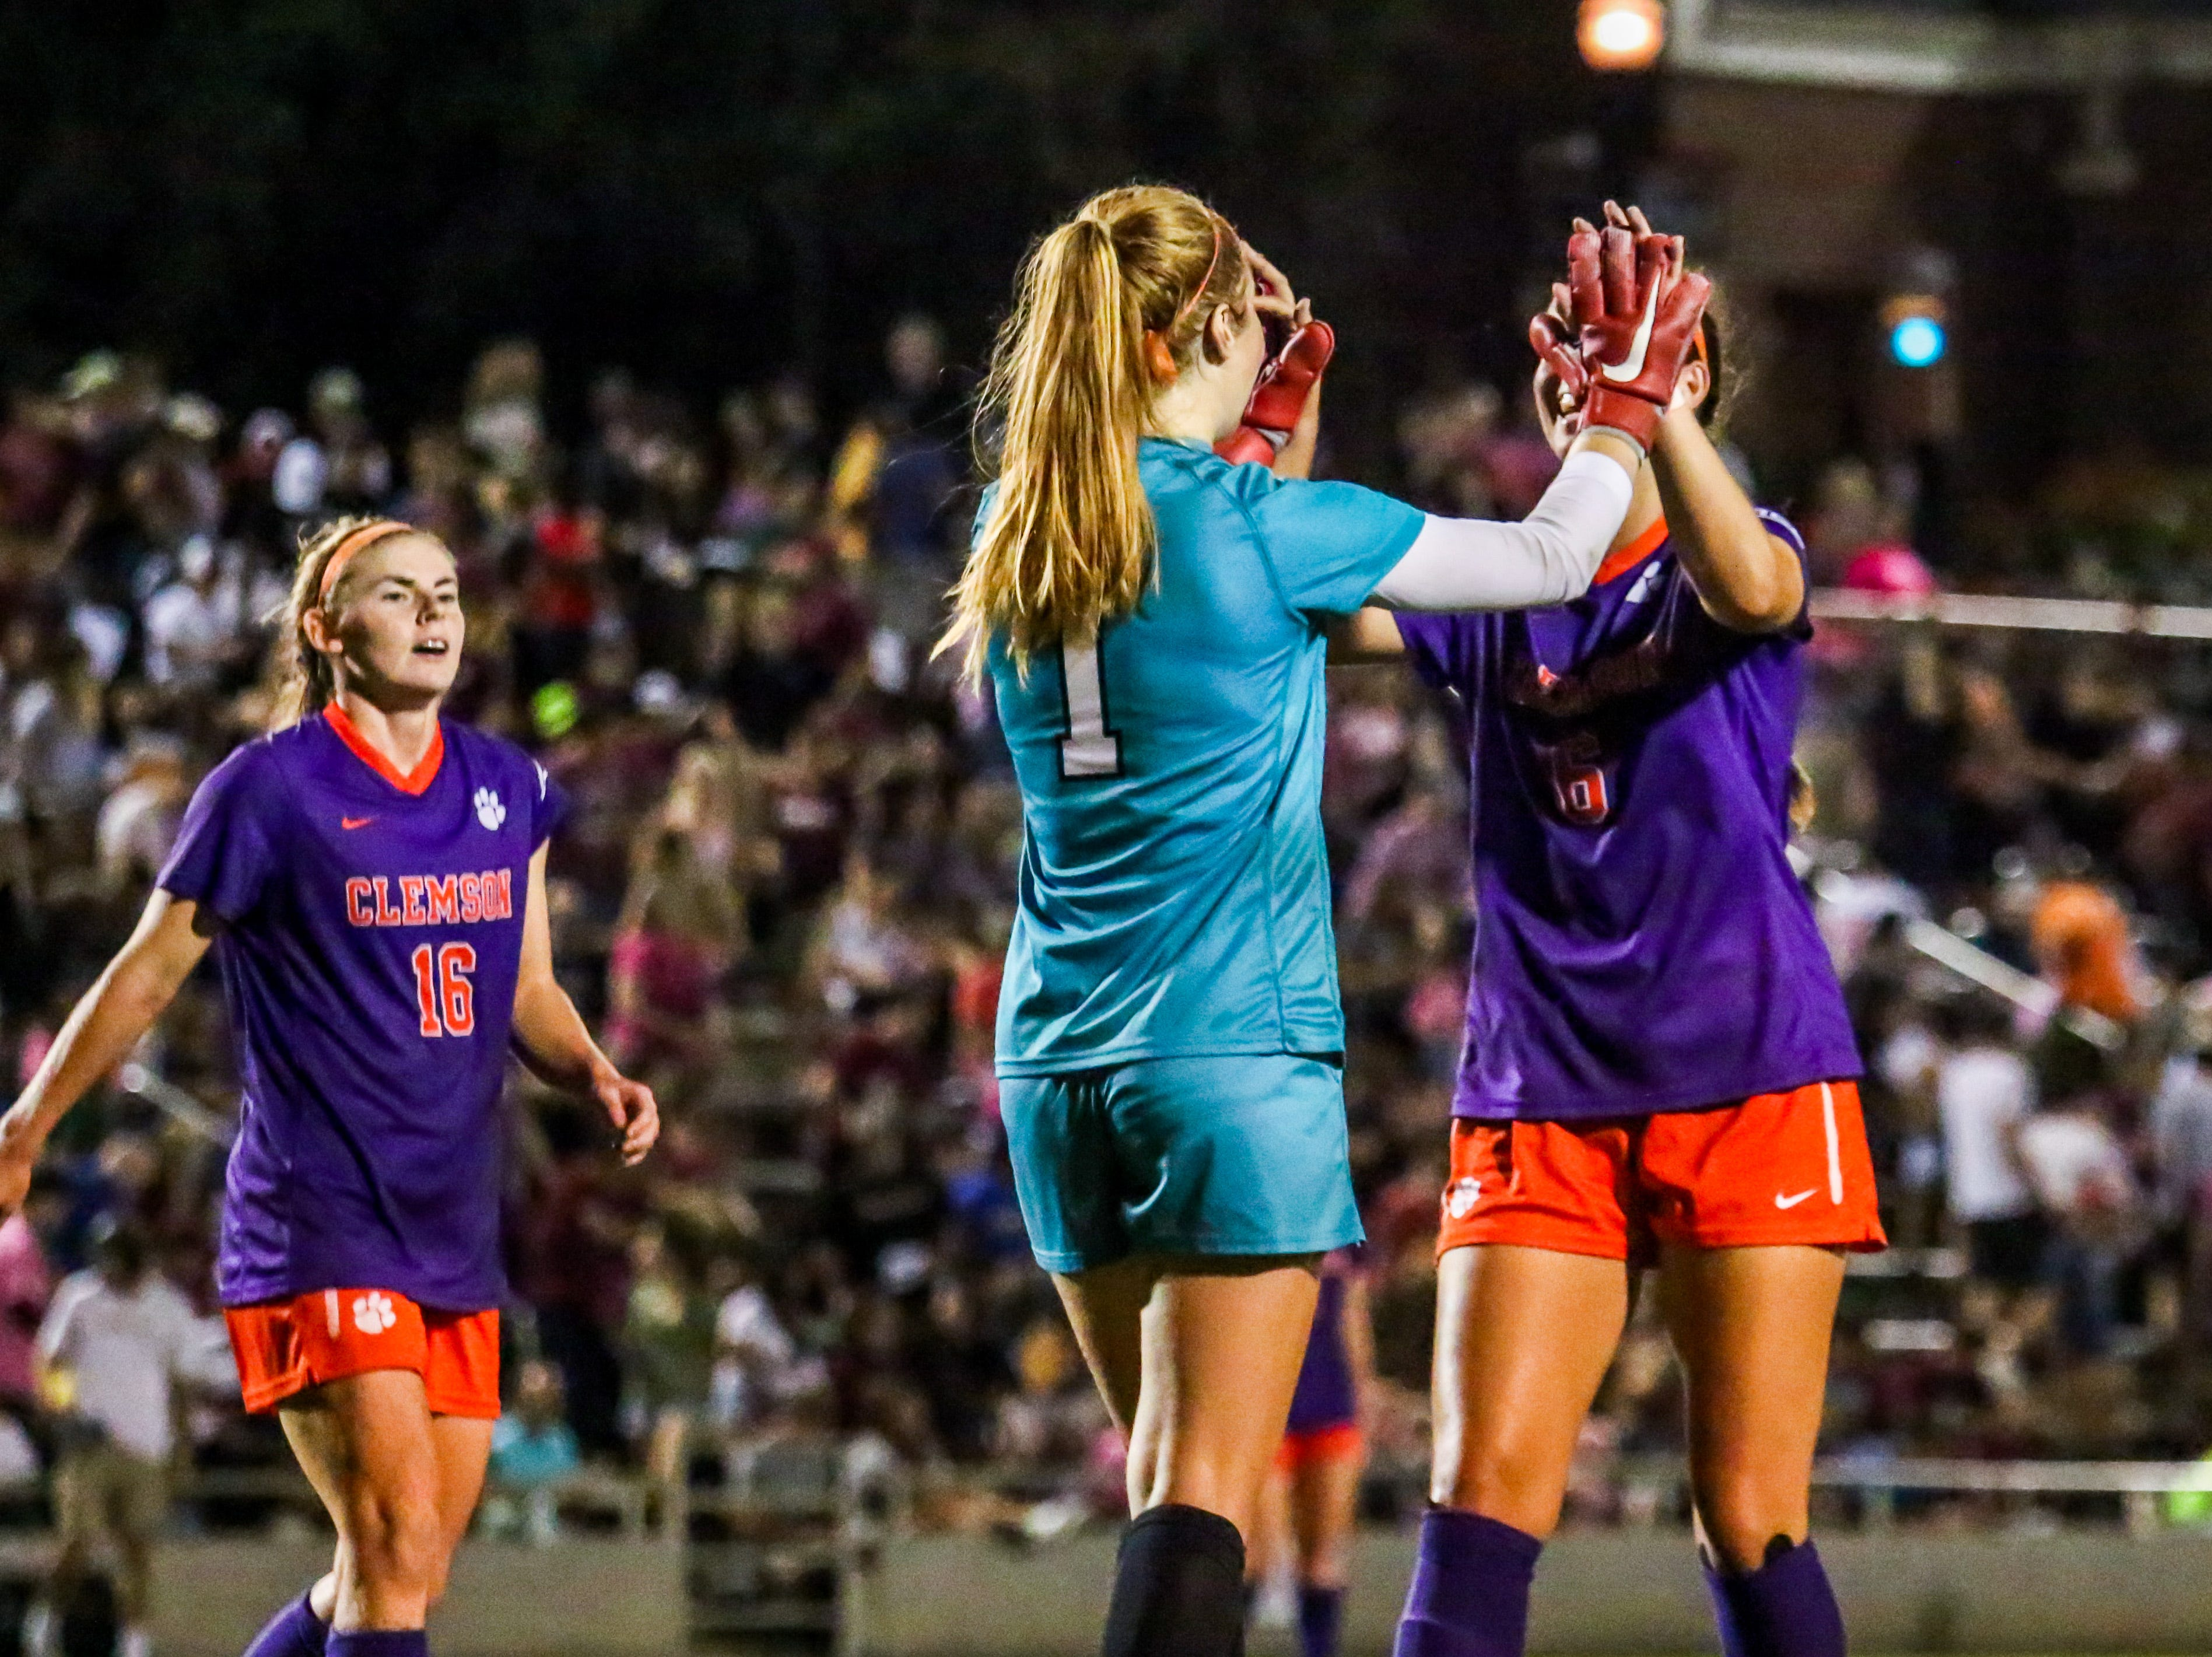 Clemson's defense held strong throughout the whole game, taking down the Noles 1-0 on Thursday, October 4th at the Seminole Soccer Complex.